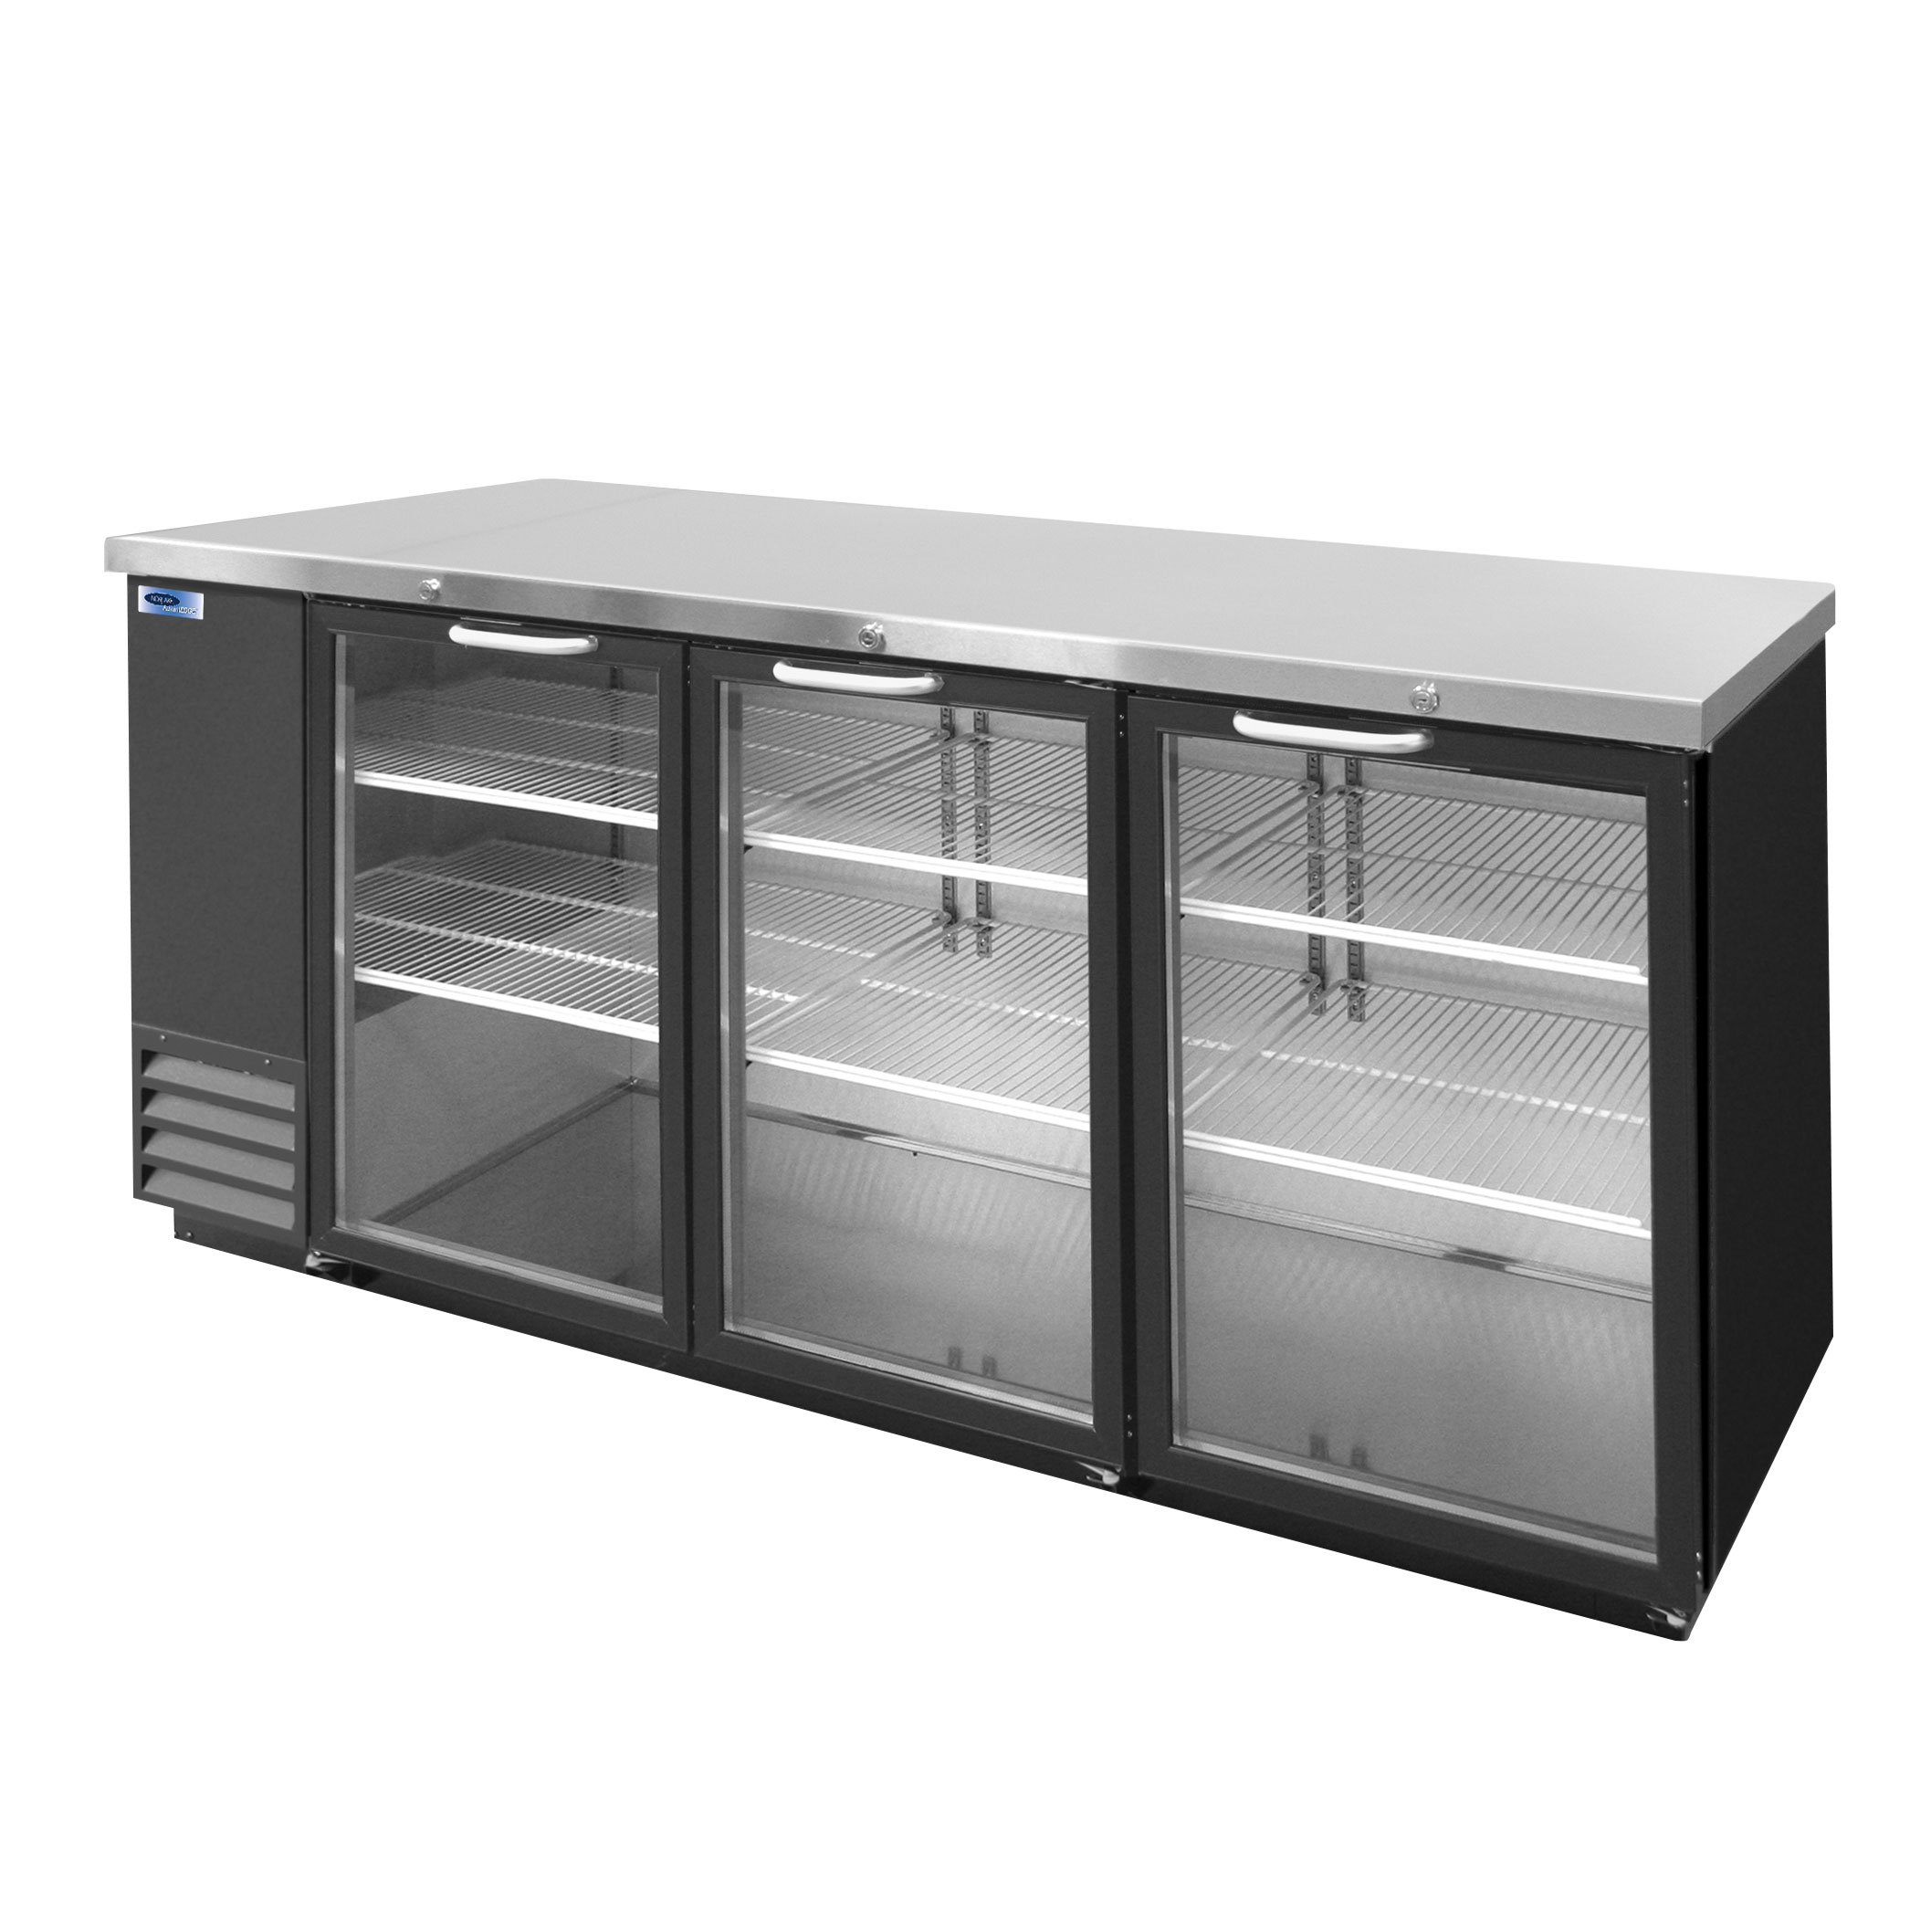 Nor-Lake NLBB79G back bar cabinet, refrigerated